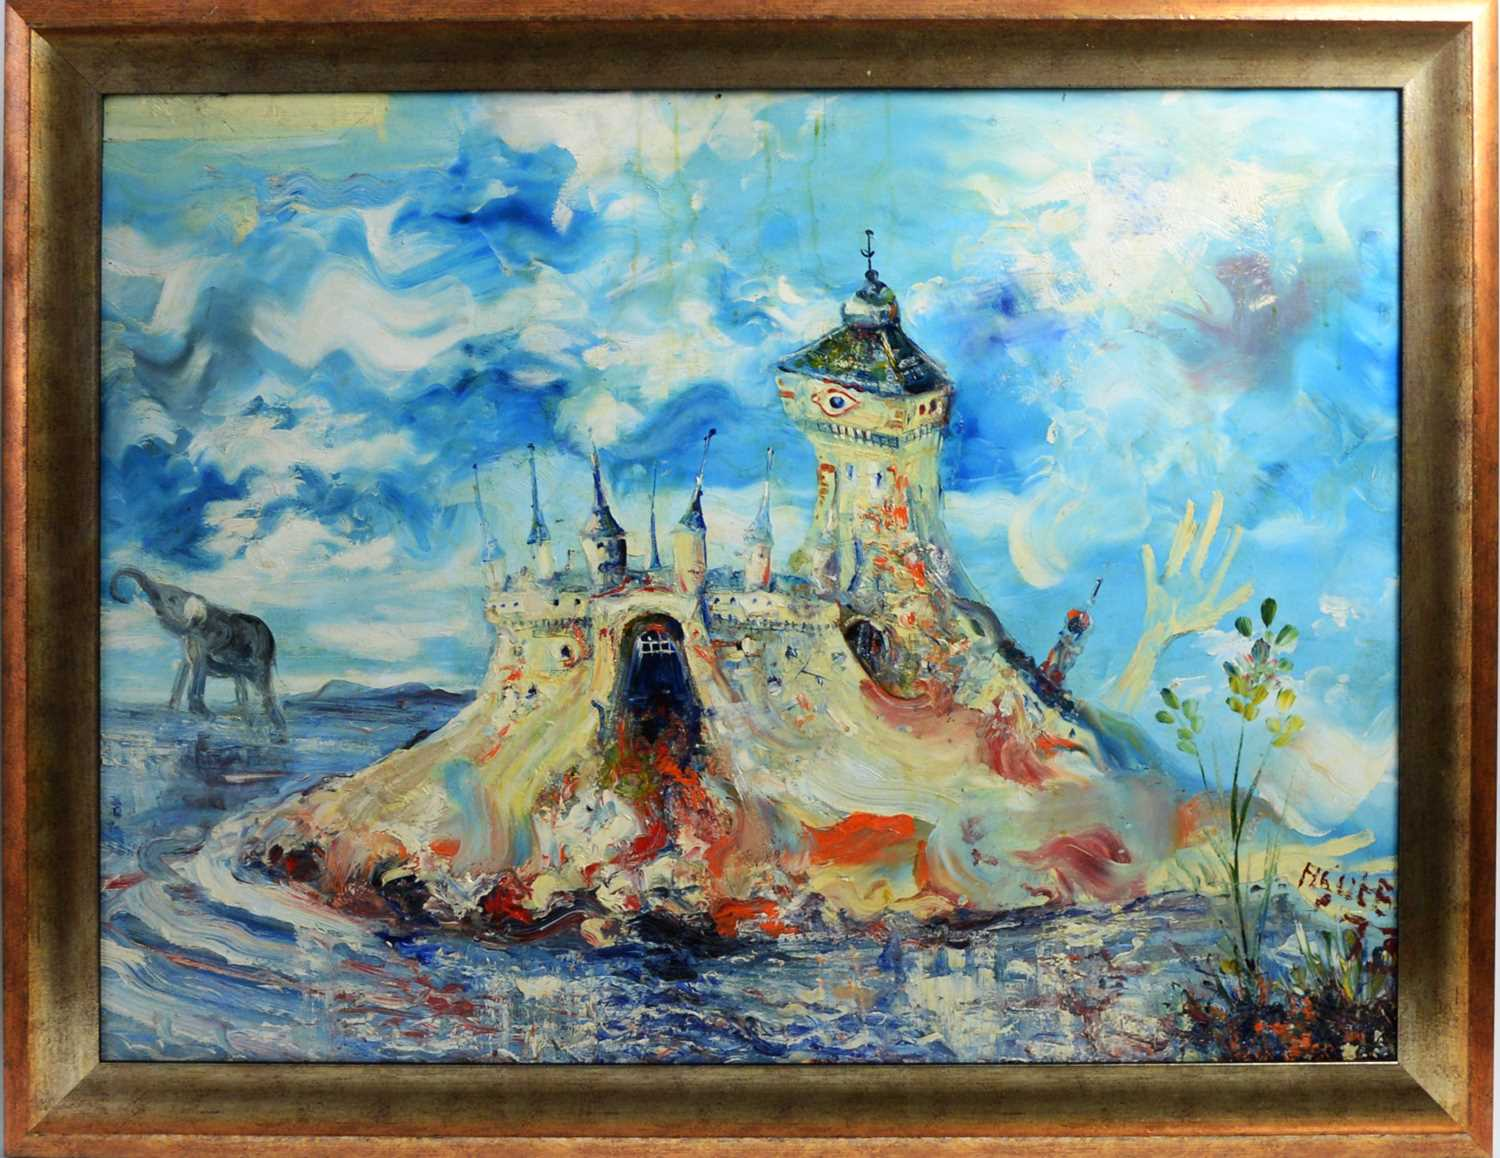 Hidden archive of local artists work discovered in Morpeth